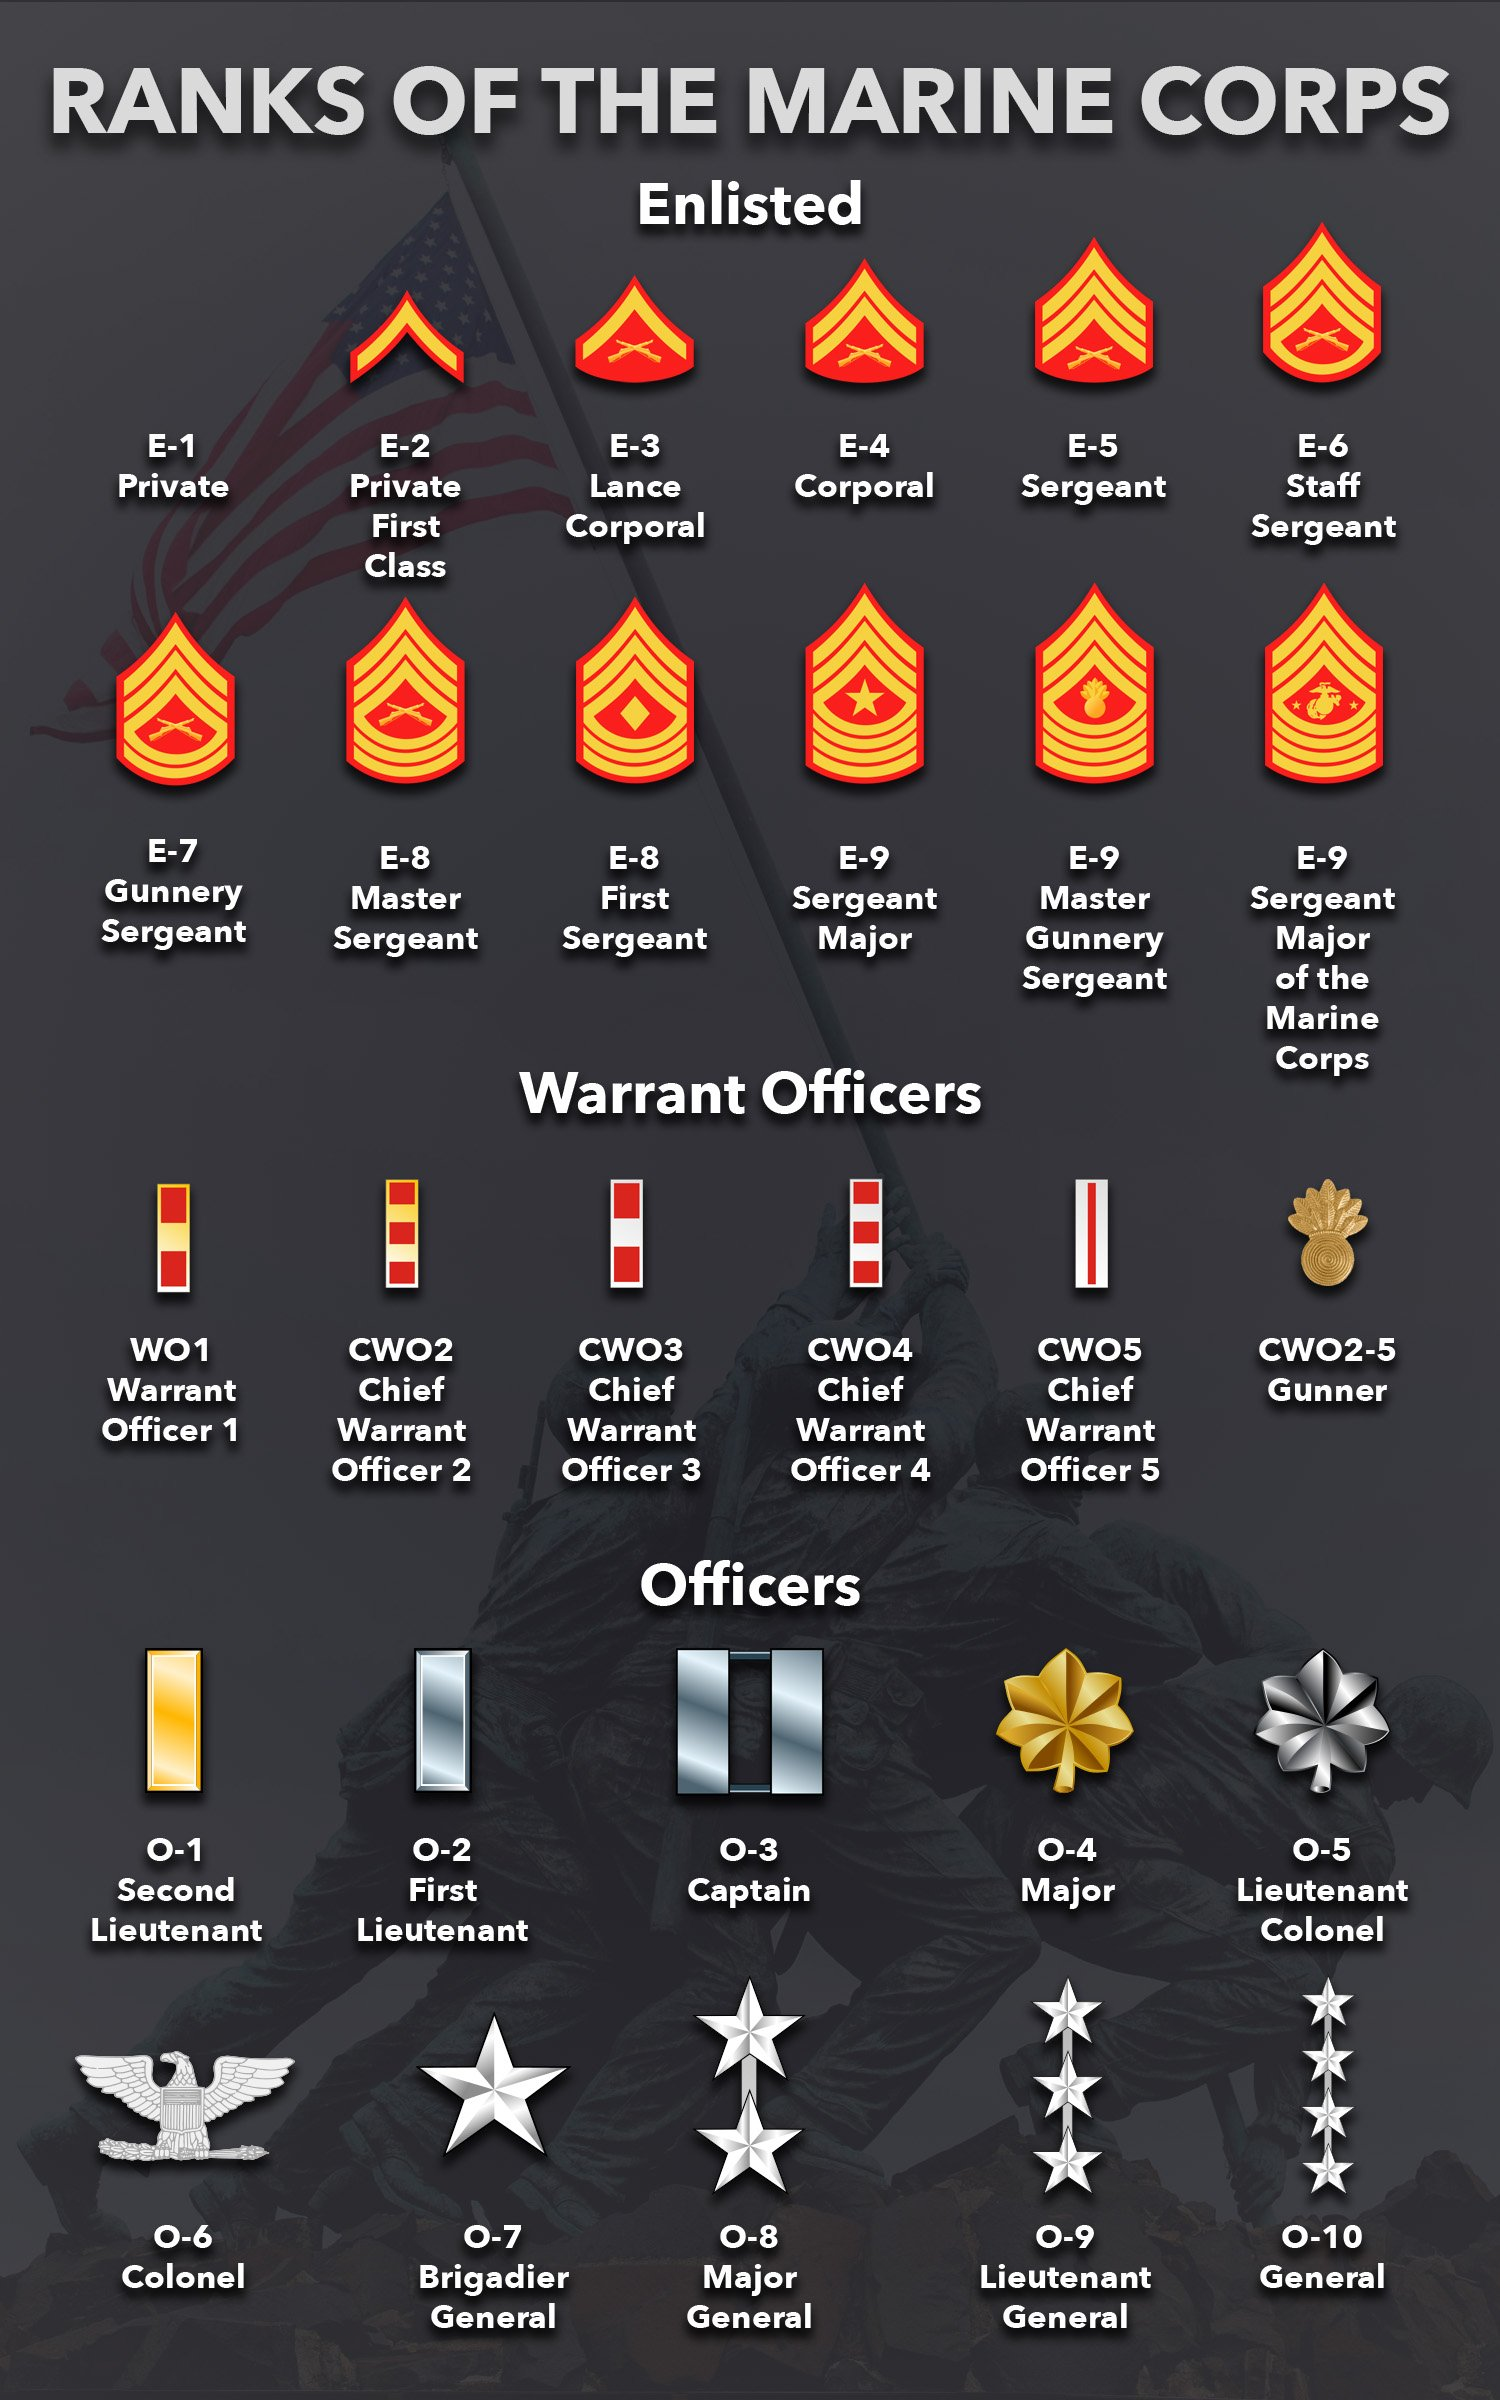 Marine Corps ranks in ascending order with rank insignia and pay grade.